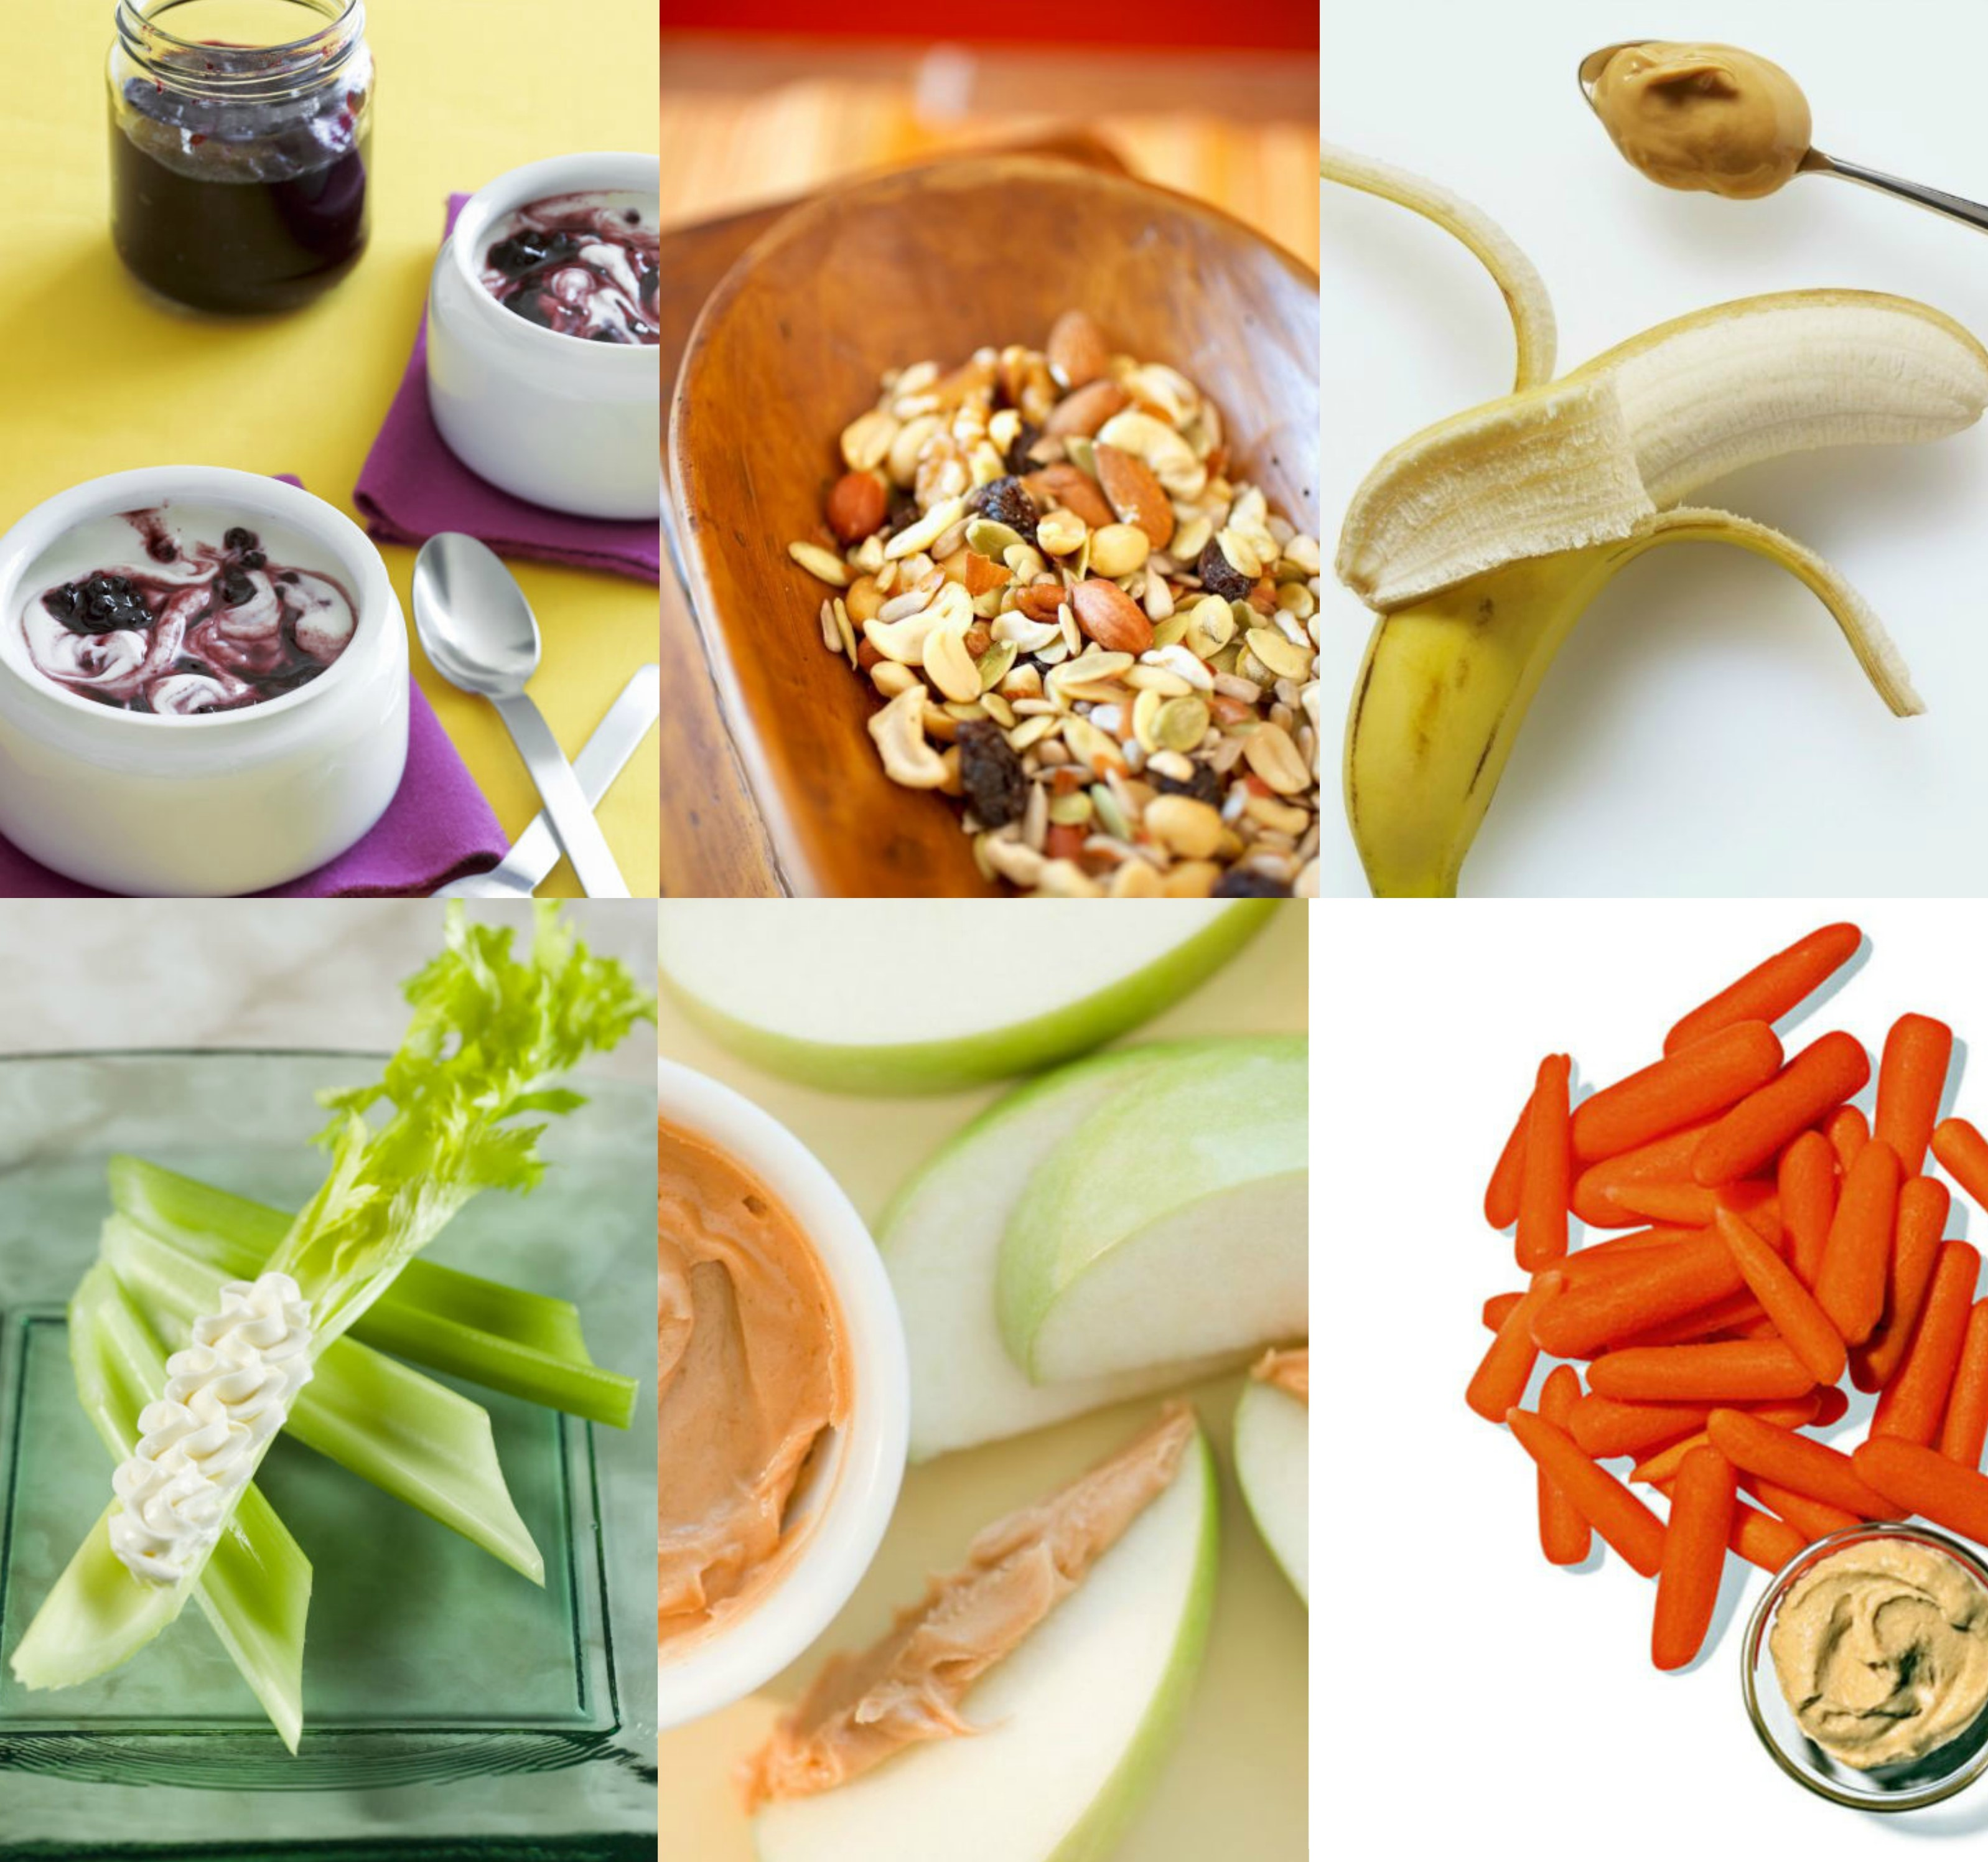 5 Healthy, easy and filling snacks ideas